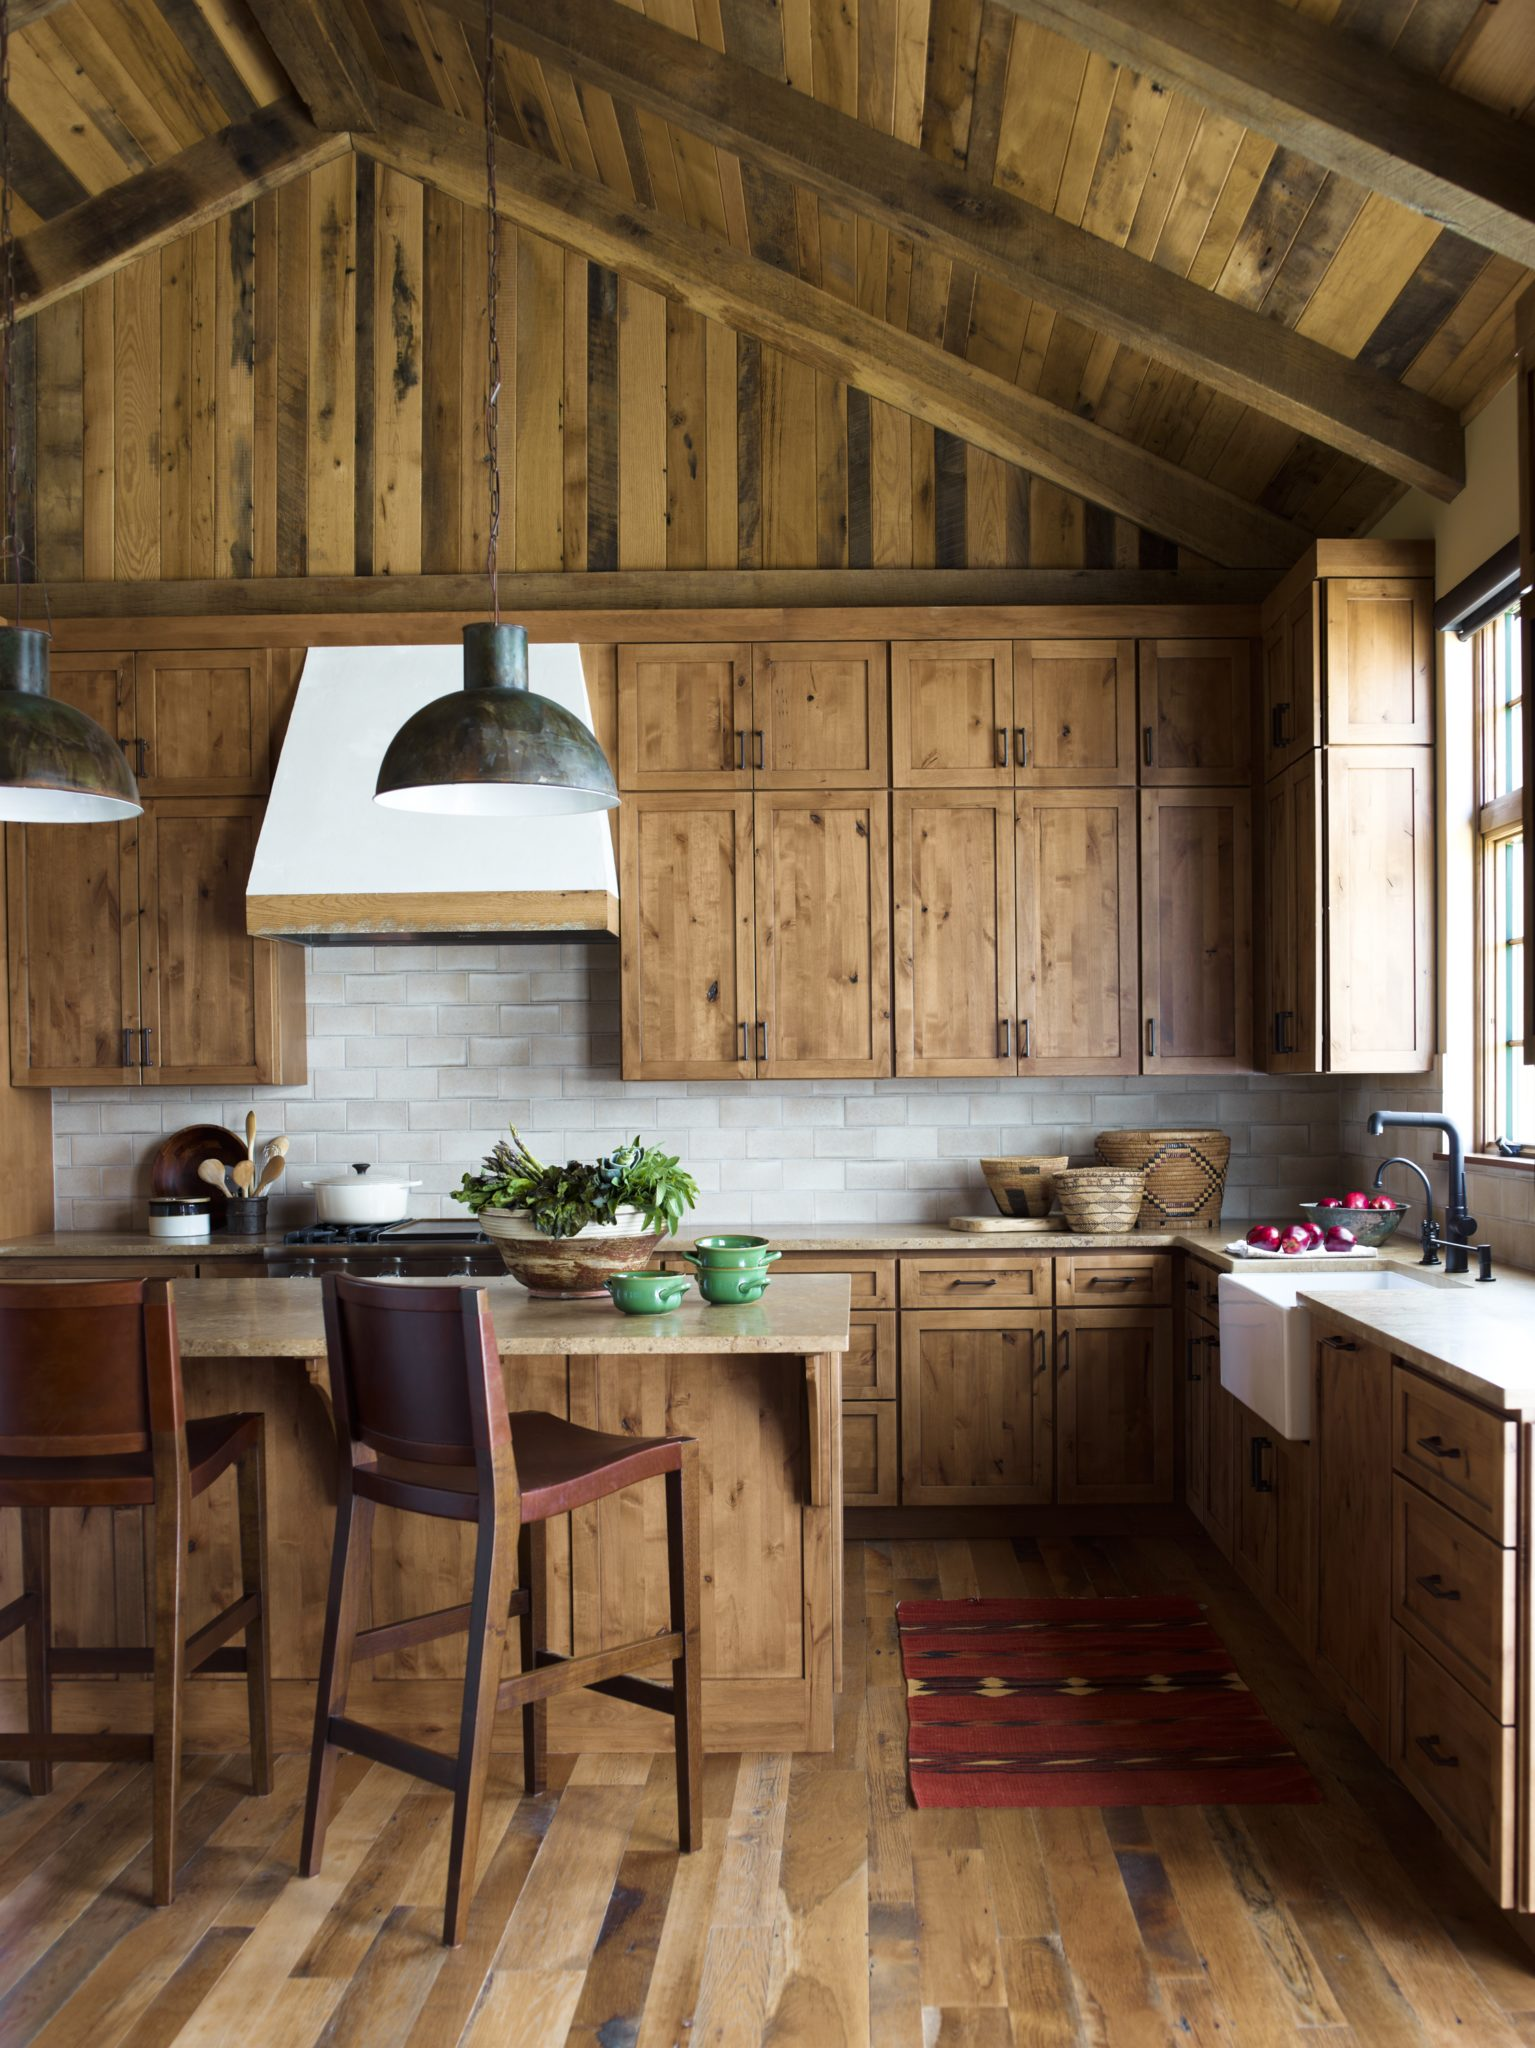 Rustic Montana Retreat - Kitchen by Kylee Shintaffer